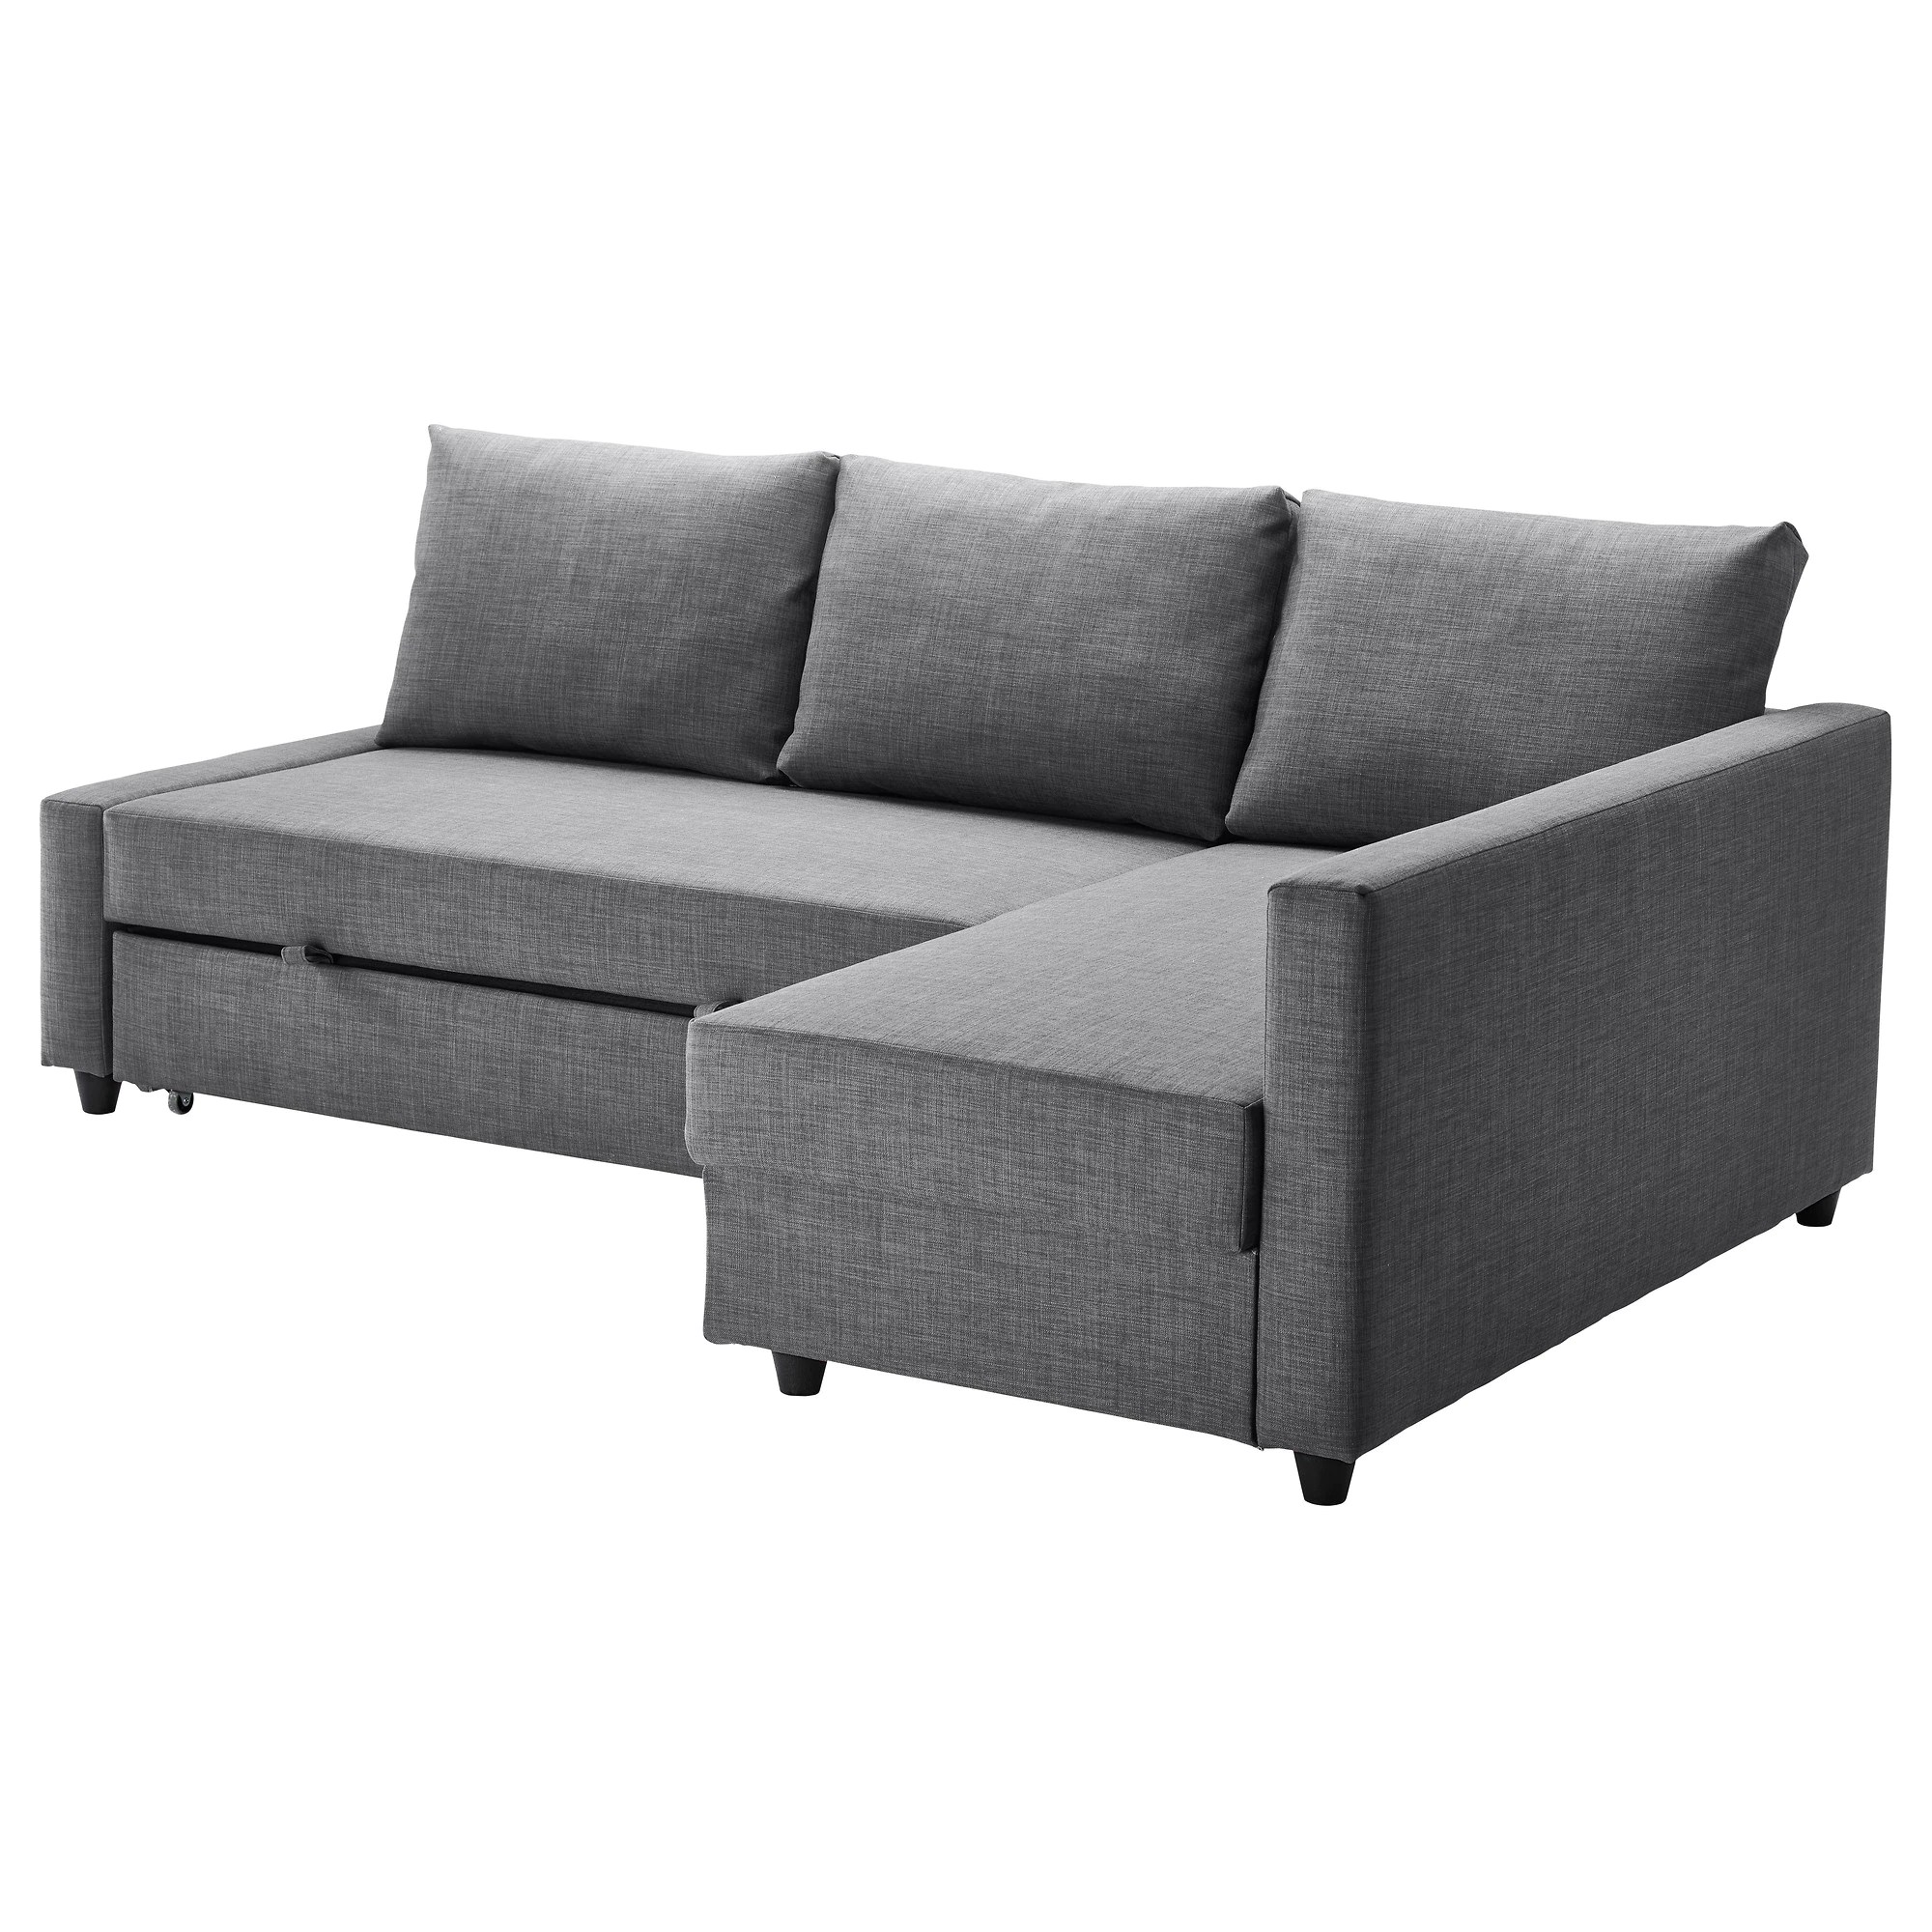 Couches In Ikea Sleeper Sectional 3 Seat W Storage Friheten Skiftebo Dark Gray